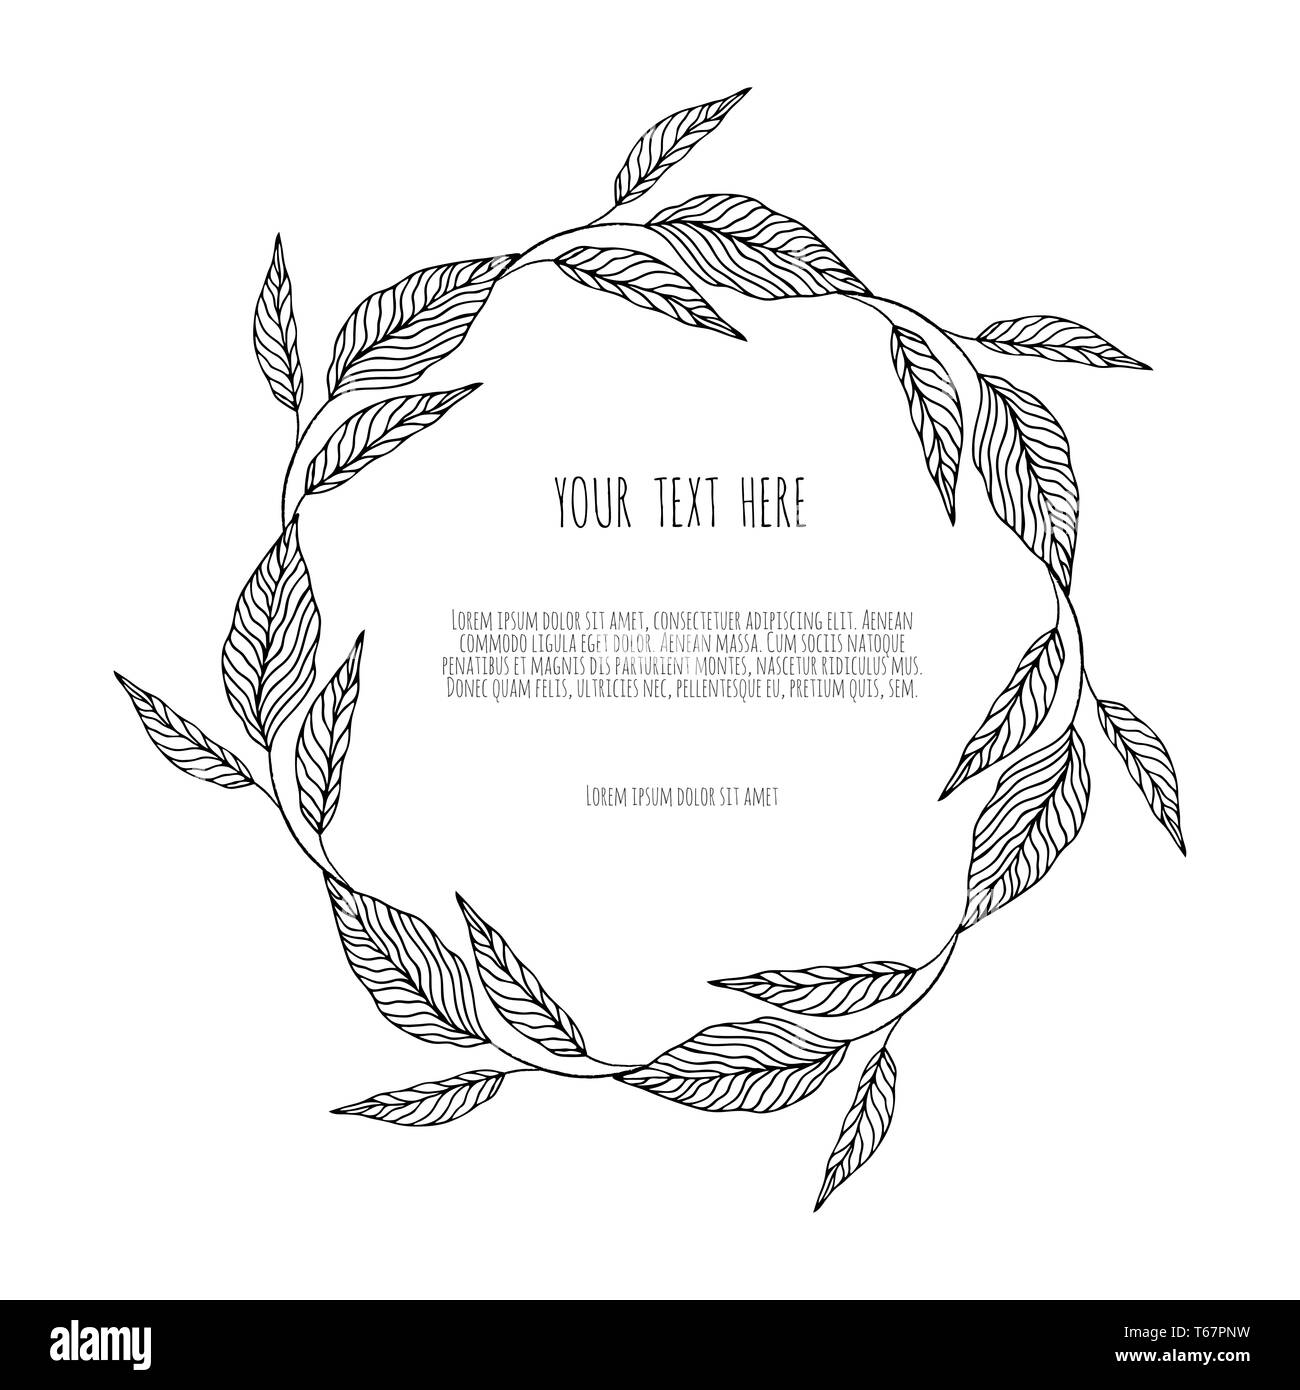 wreath with simple branches and leaves. - Stock Image